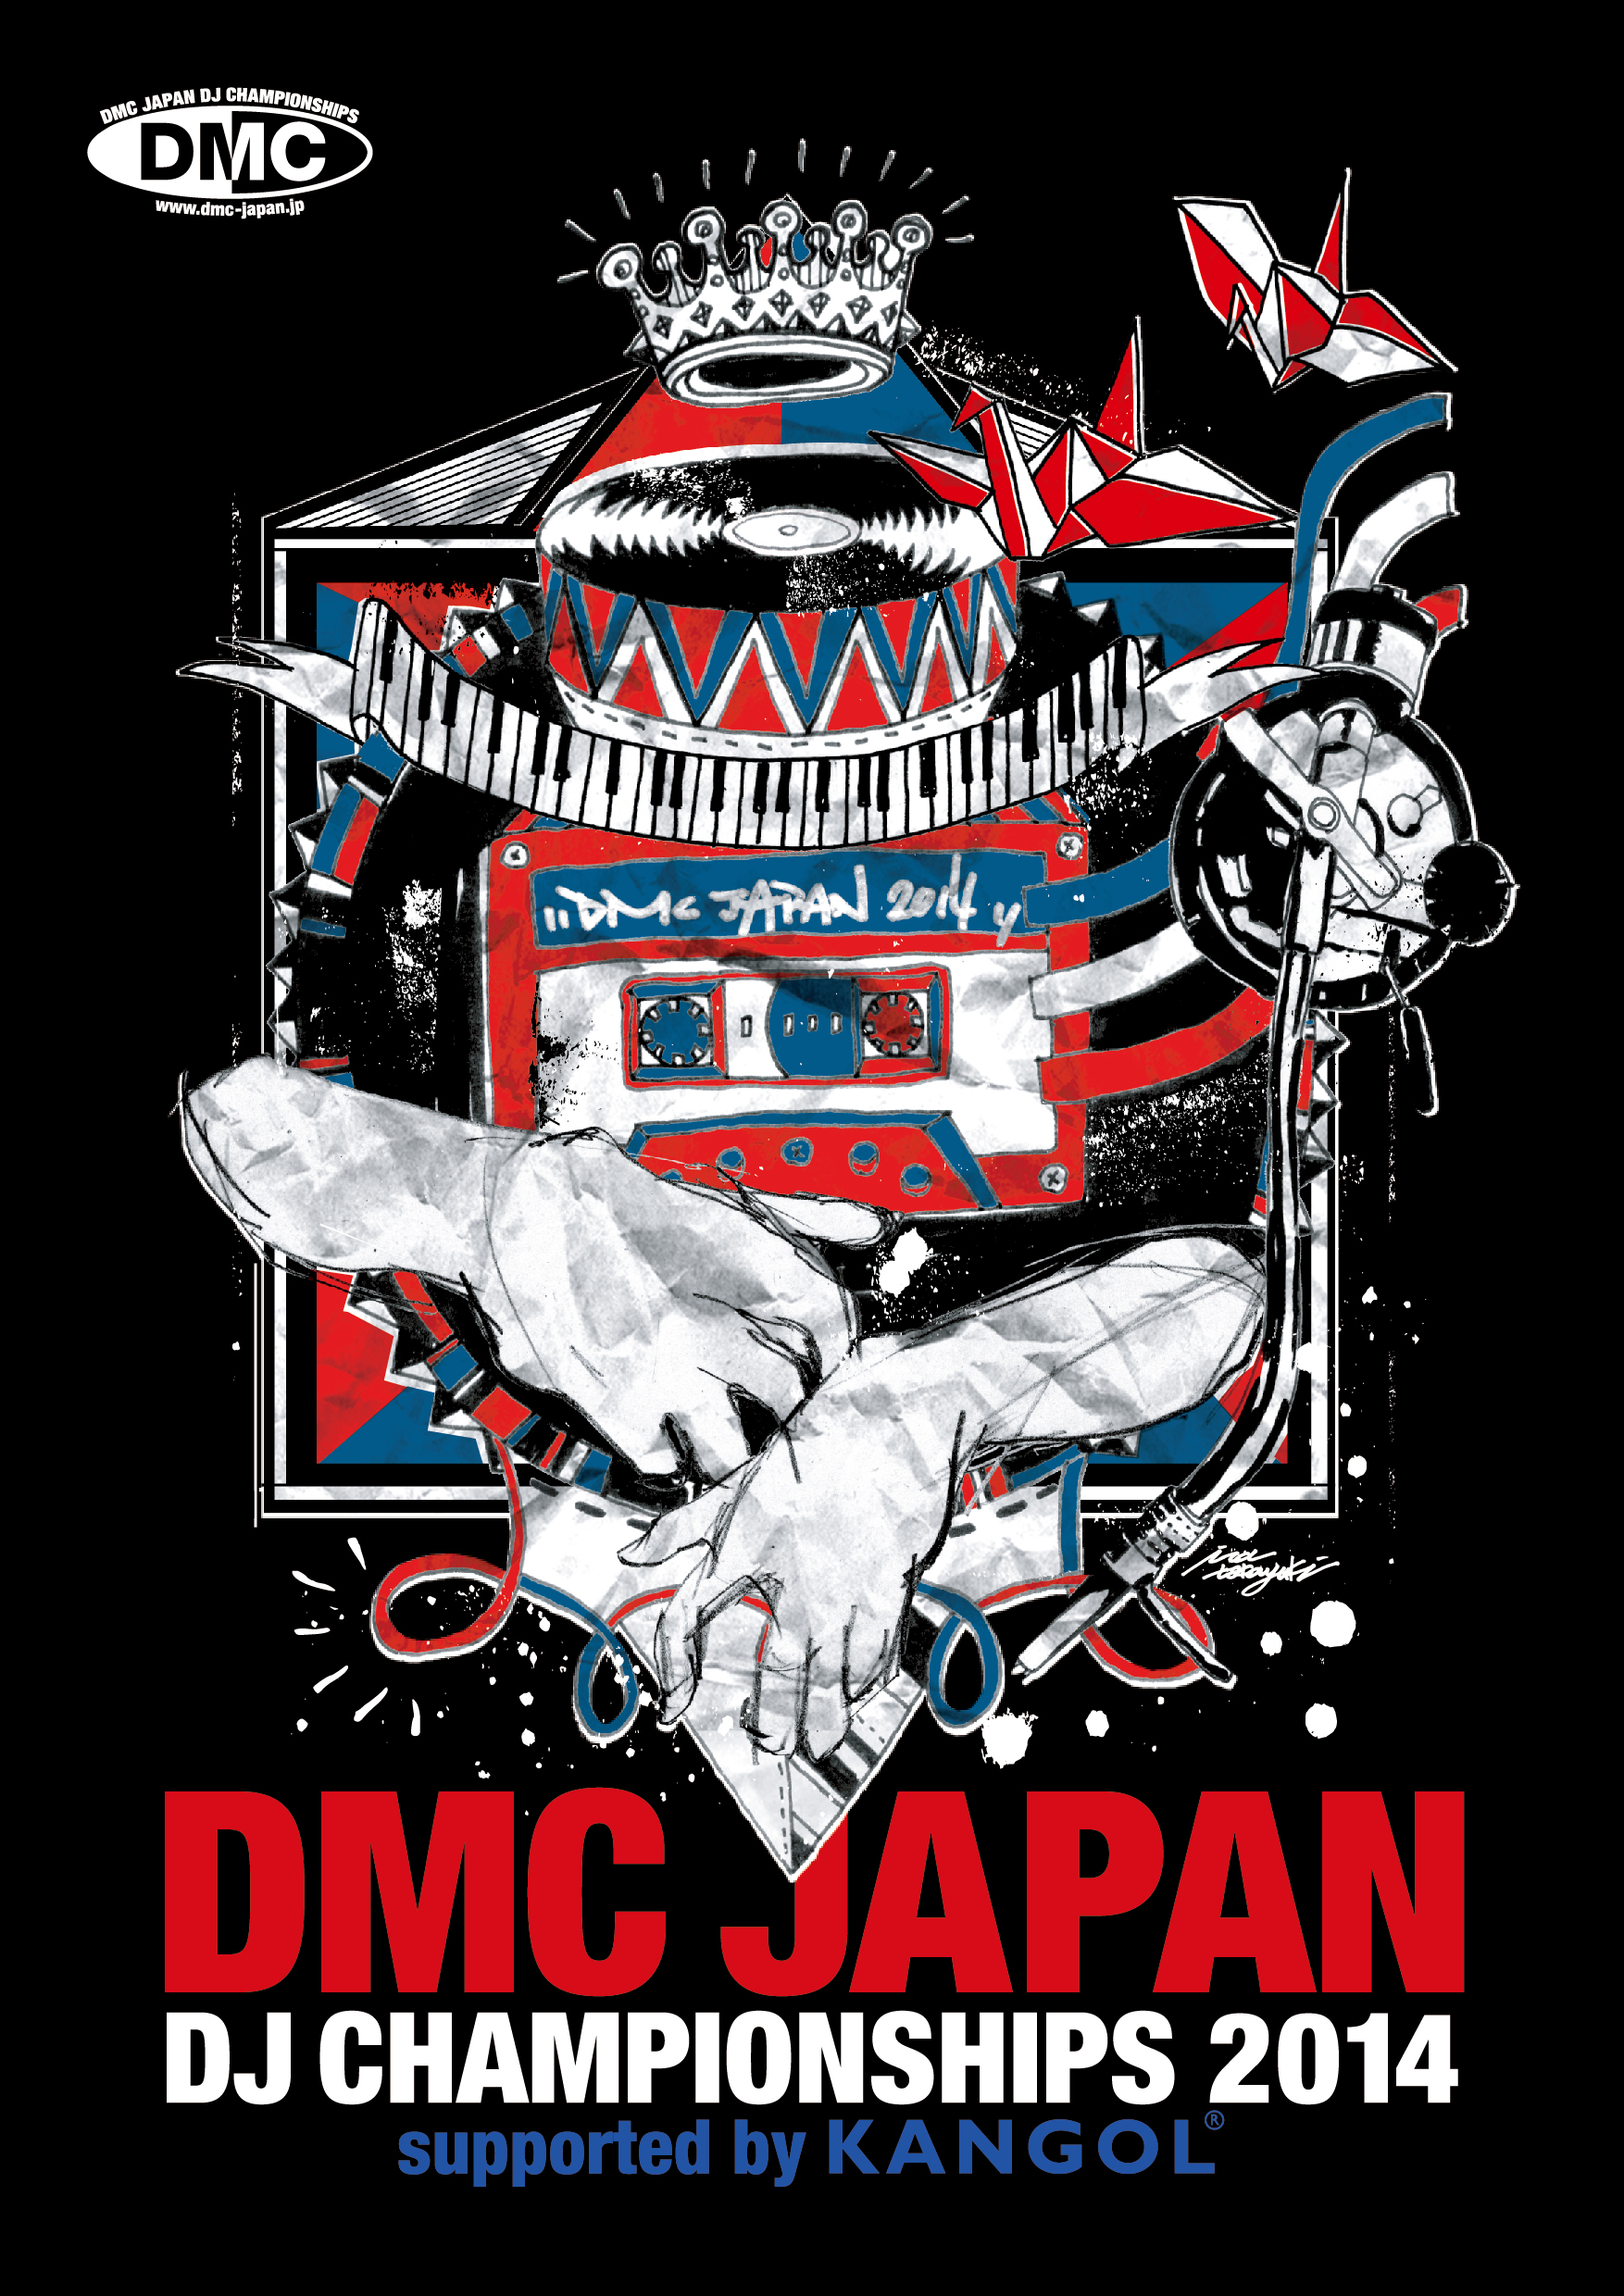 dmc_japan_2014_KeyVisual_with_text